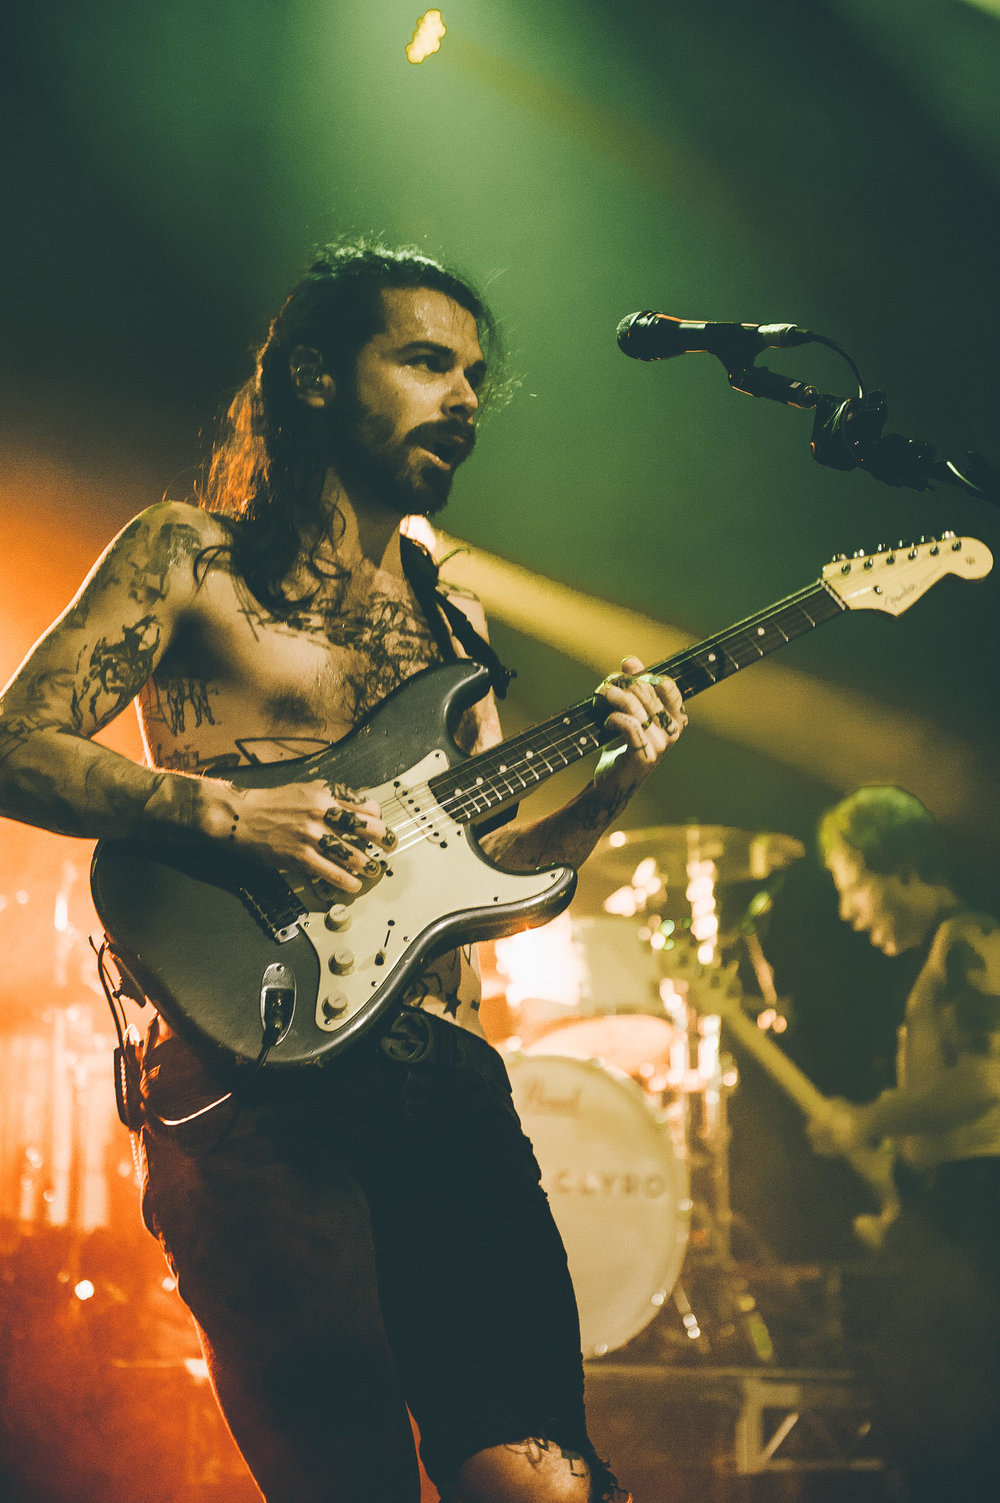 1_Biffy_Clyro-Vogue_Theatre-Timothy_Nguyen-20170331 (15 of 24).jpg